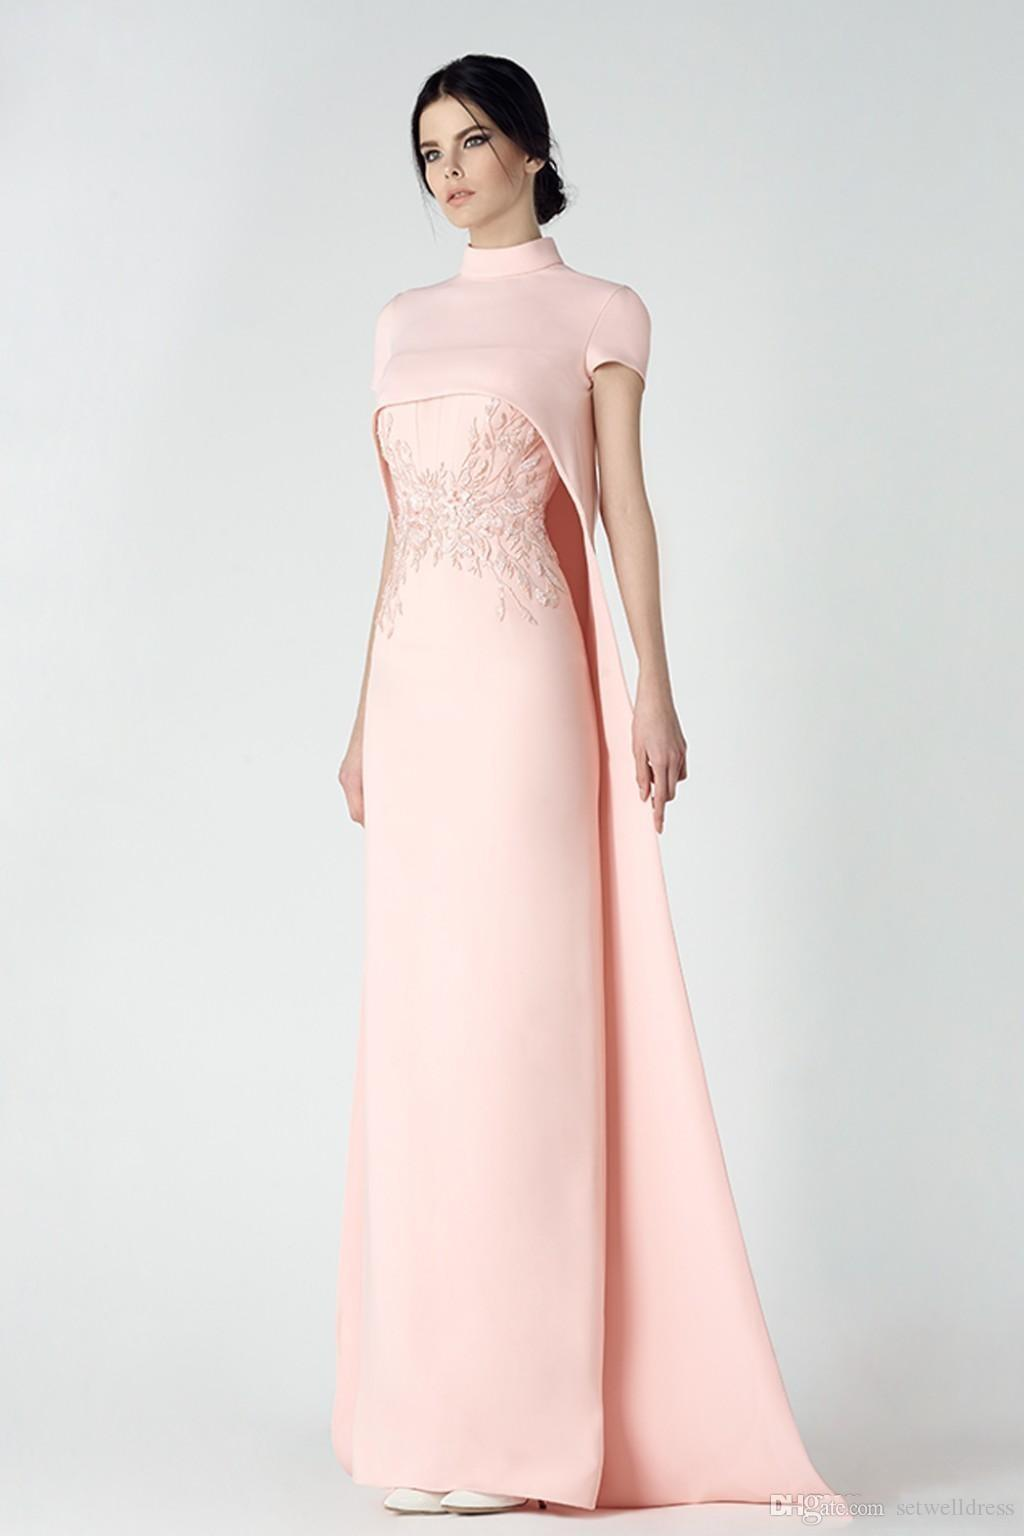 In 2017 the pink sedekobetsy high neck evening gown and shawl in 2017 the pink sedekobetsy high neck evening gown and shawl combination of formal womens evening dress yu7458 long black evening dress maternity evening ombrellifo Image collections